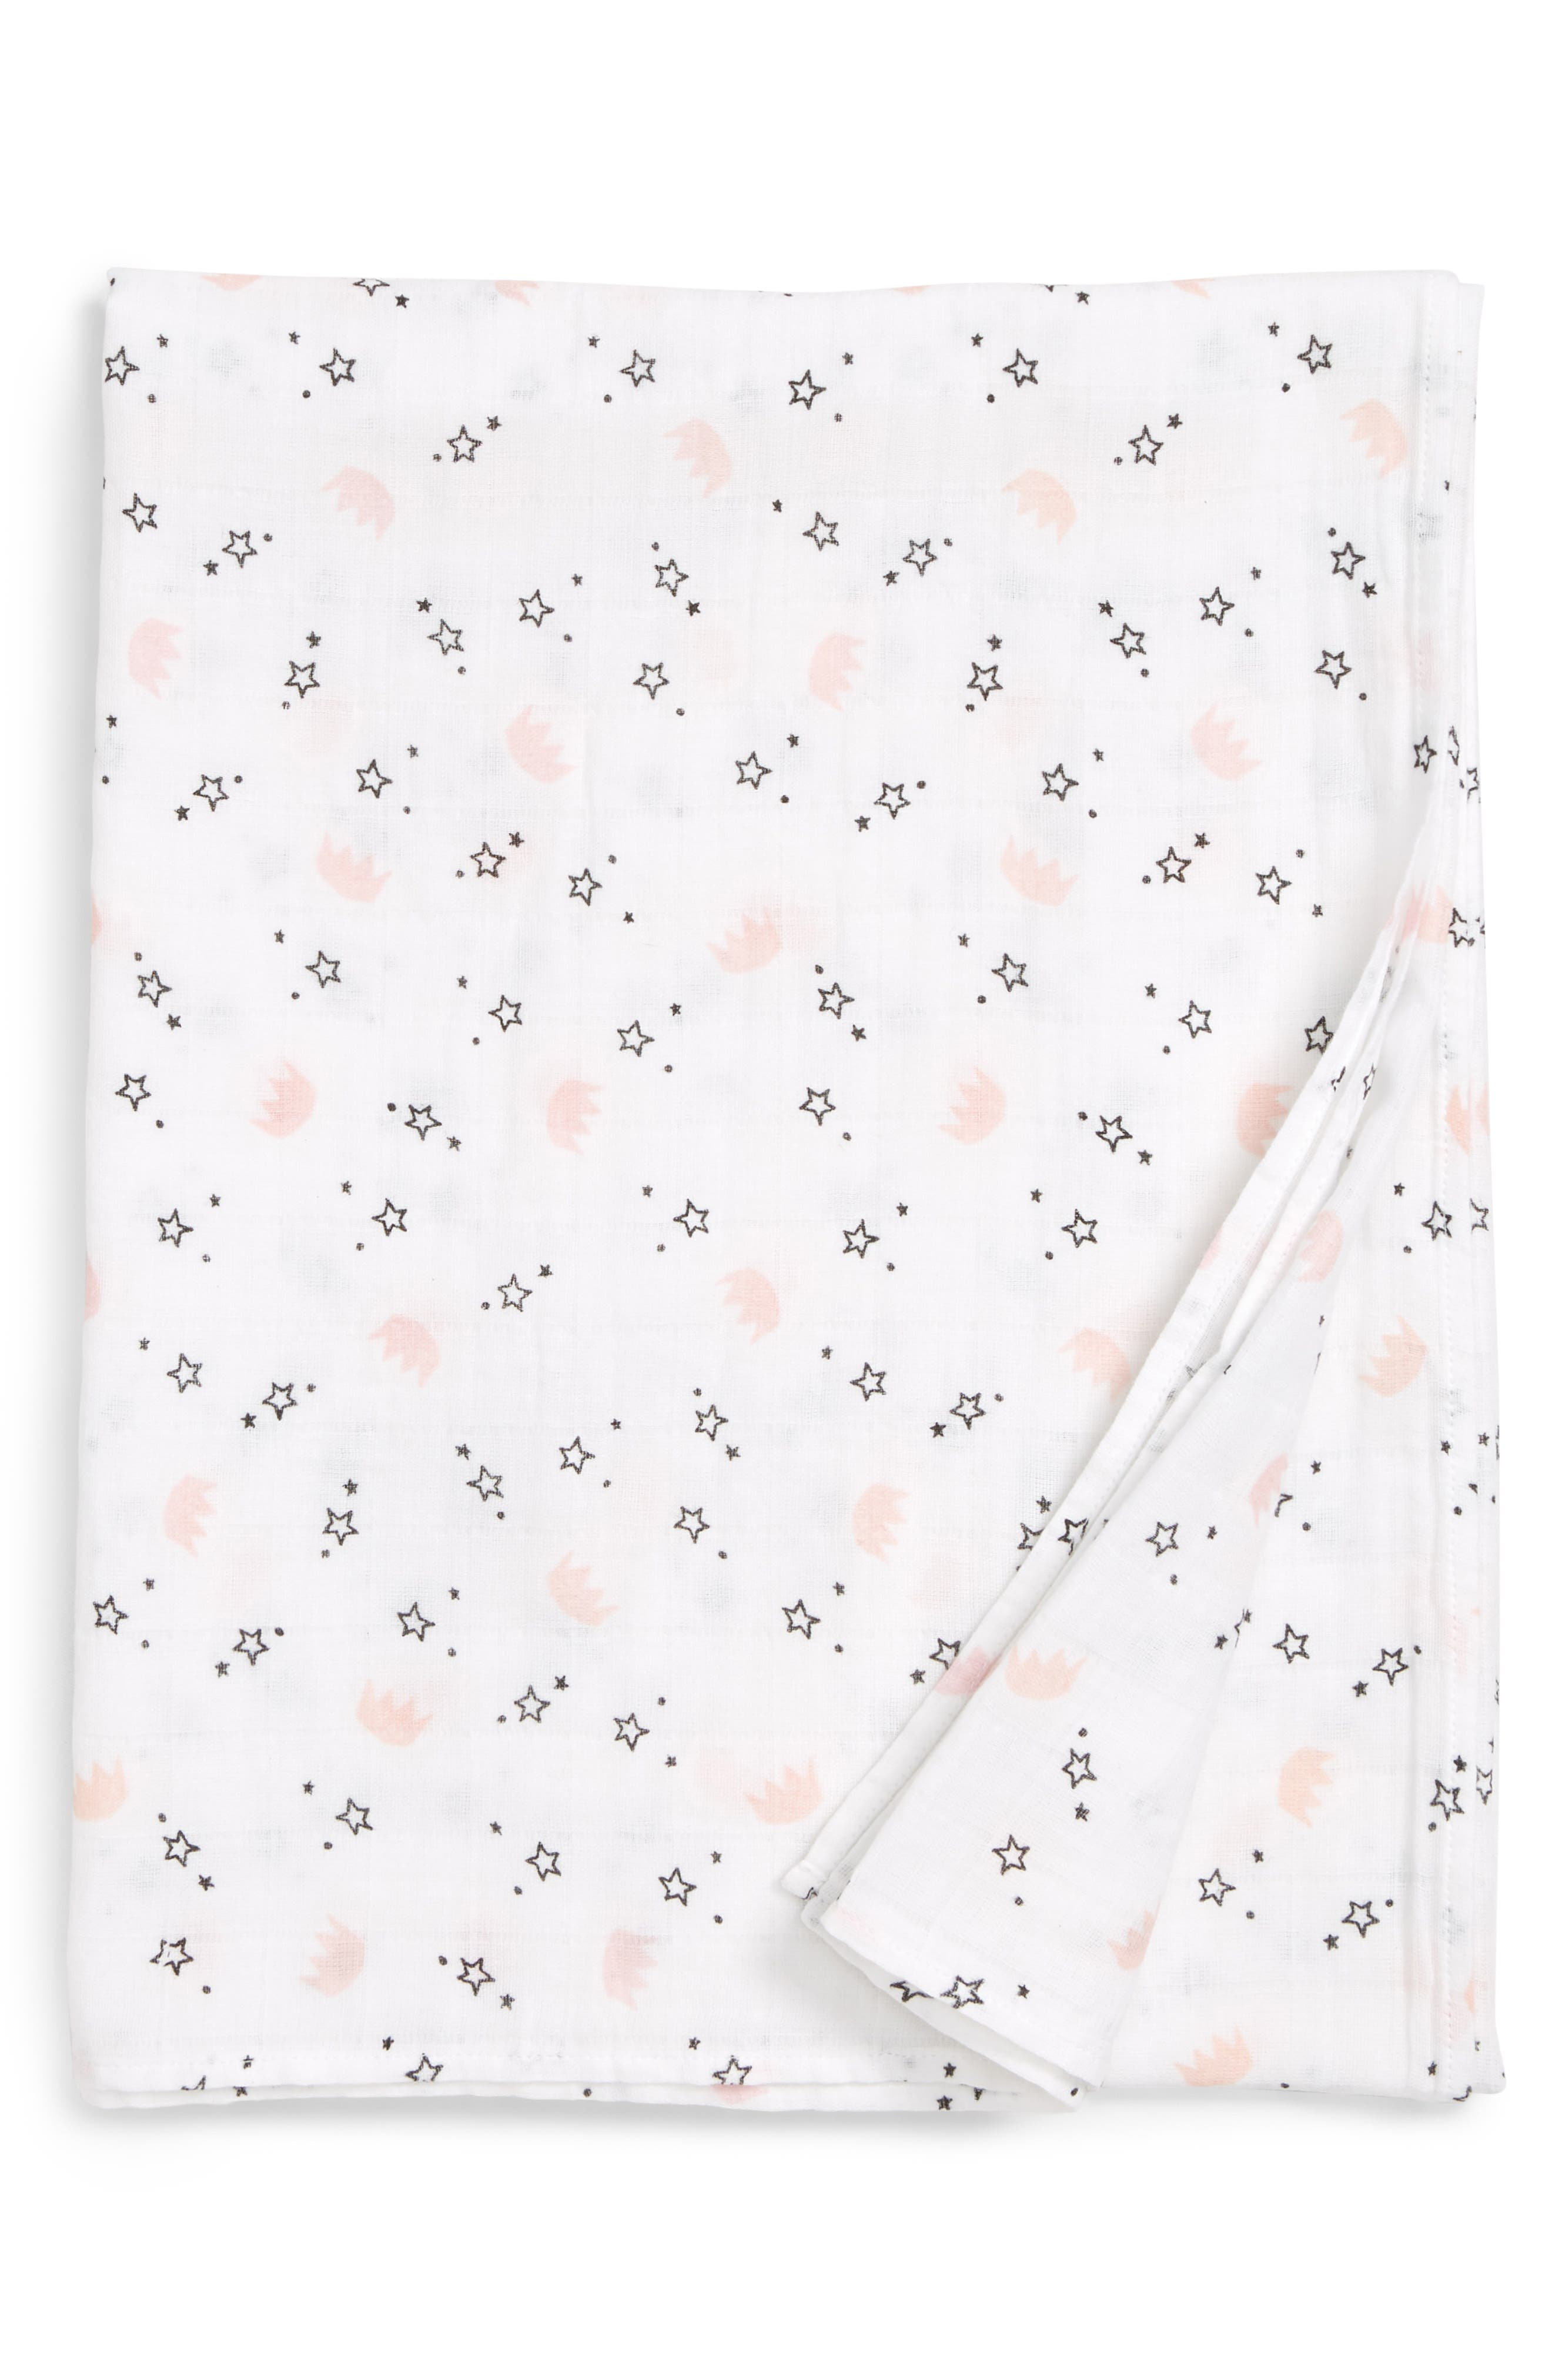 Cotton Swaddle Blanket,                         Main,                         color, WHITE- PINK CROWNS